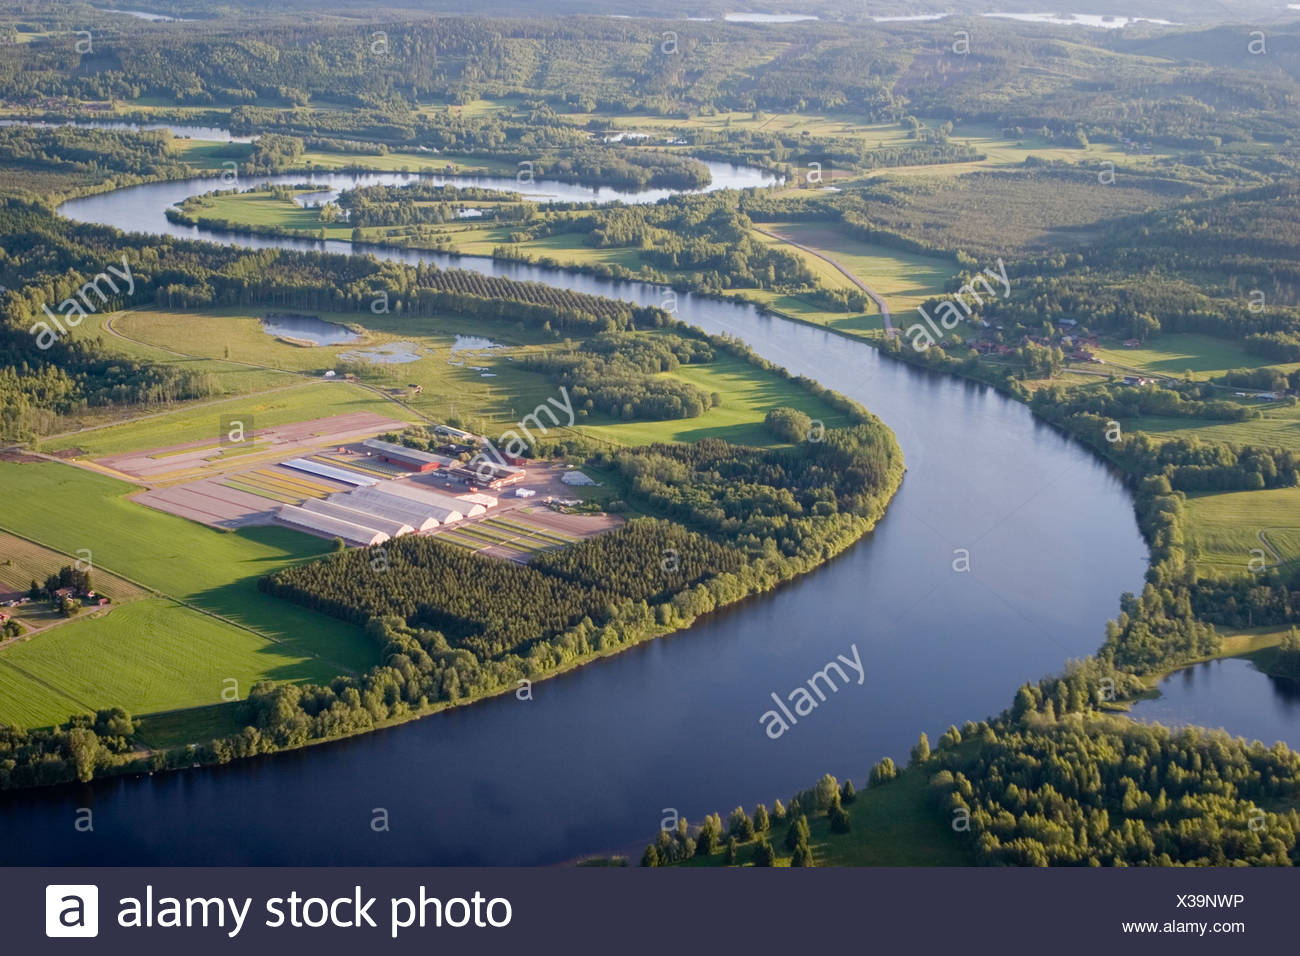 A river, aerial view, Sweden. - Stock Image